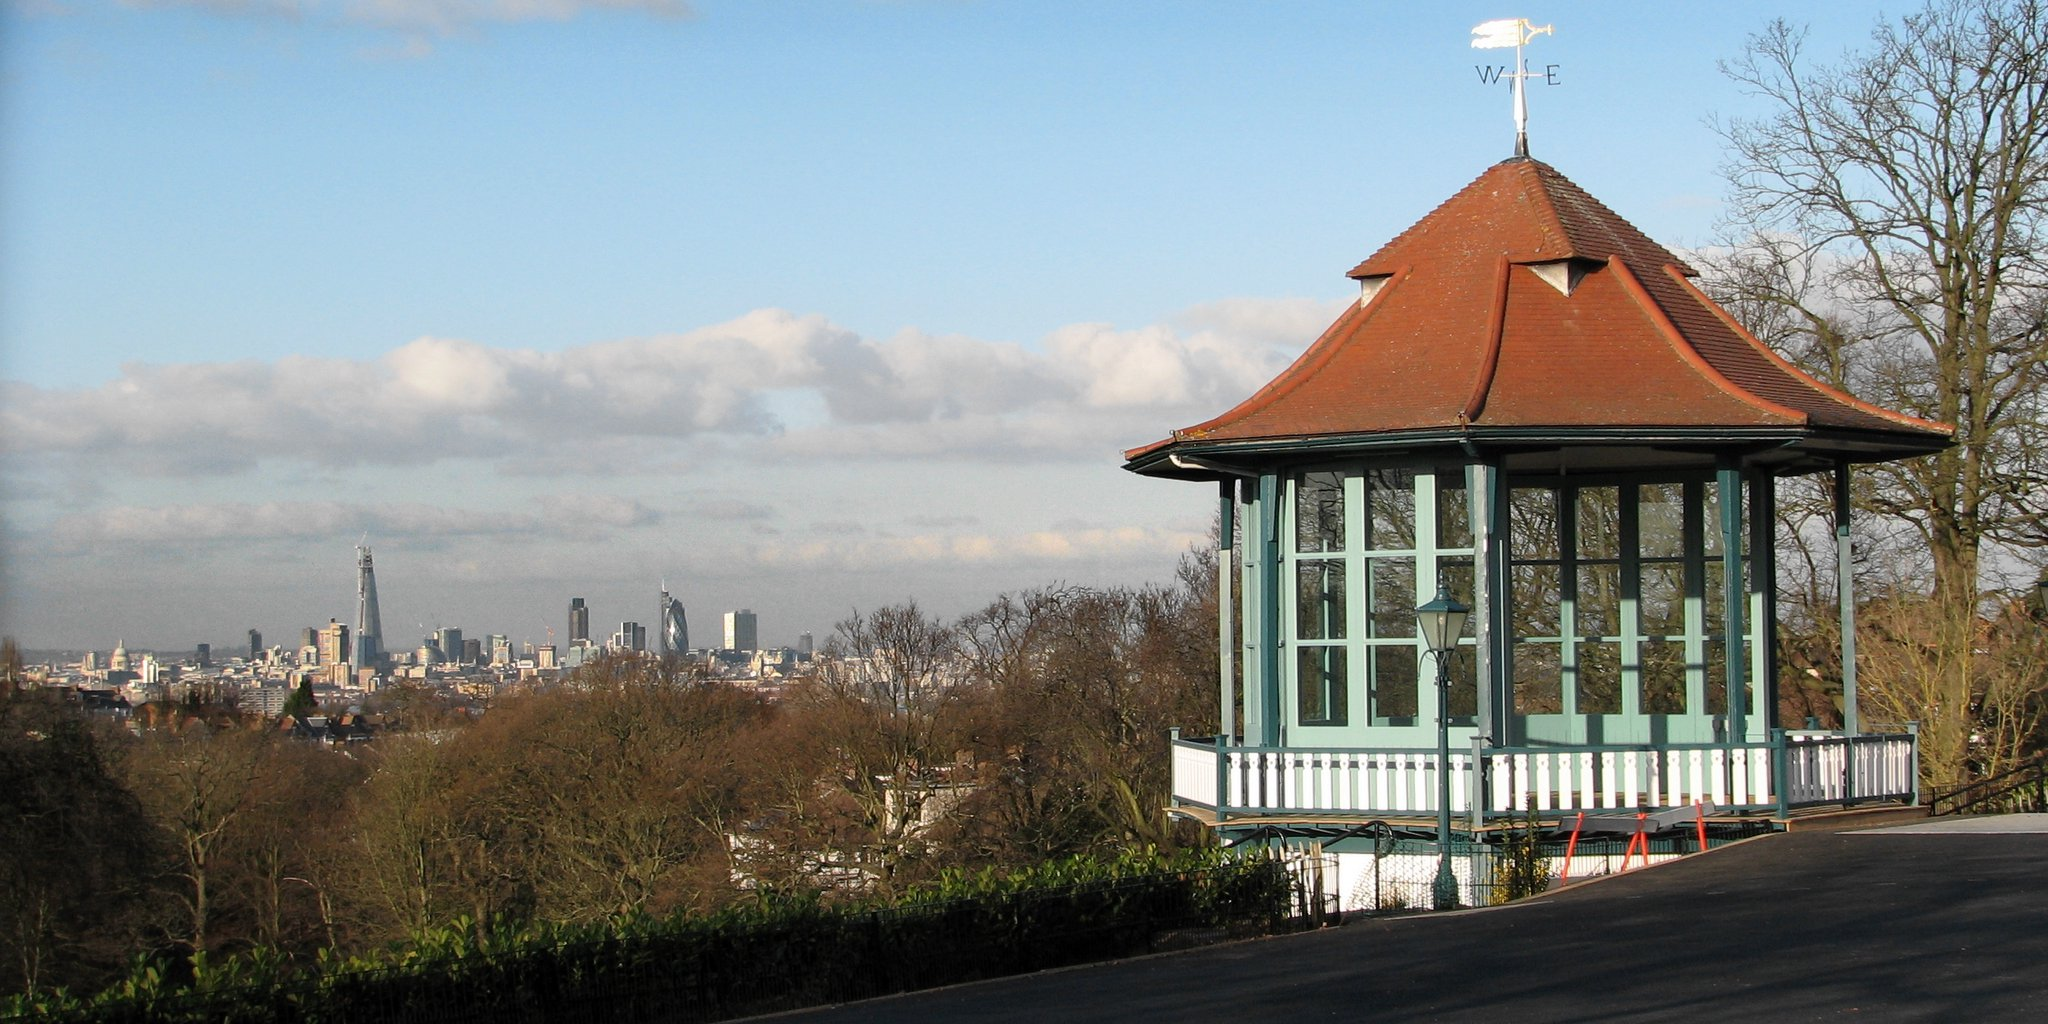 View from Horniman Gardens in London